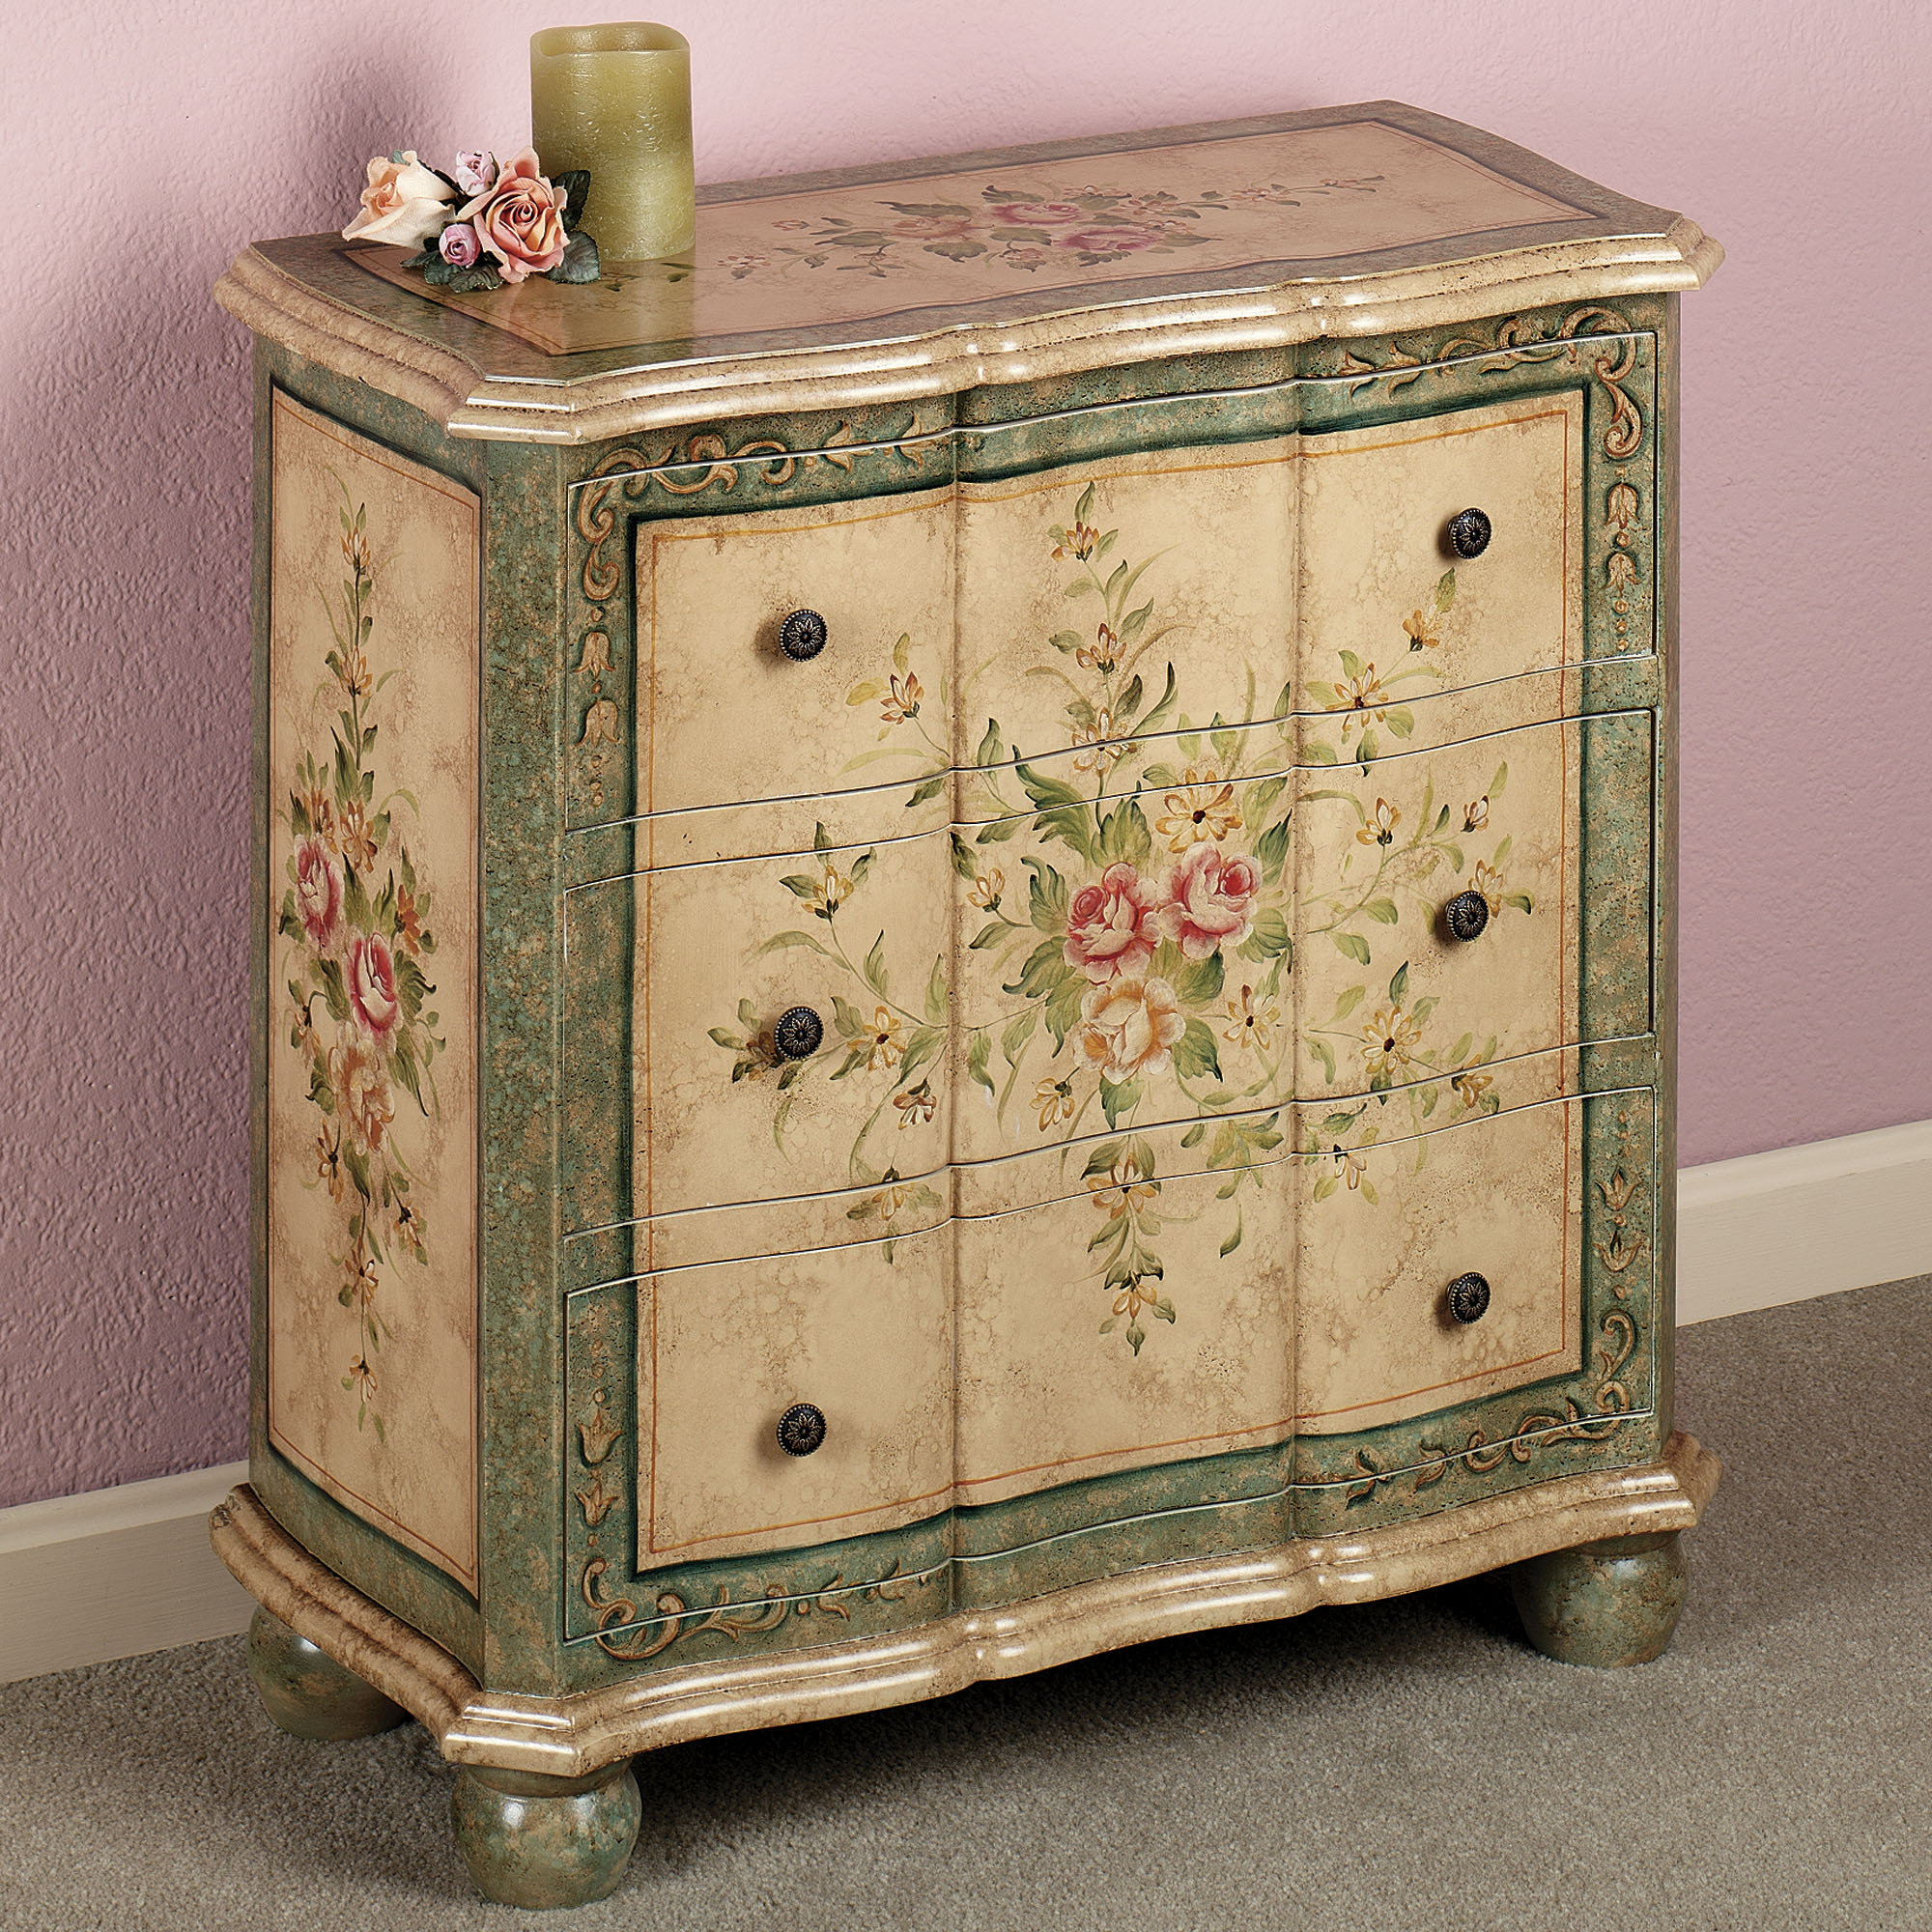 amazing hand painted furniture - goodworksfurniture WUZVFRC